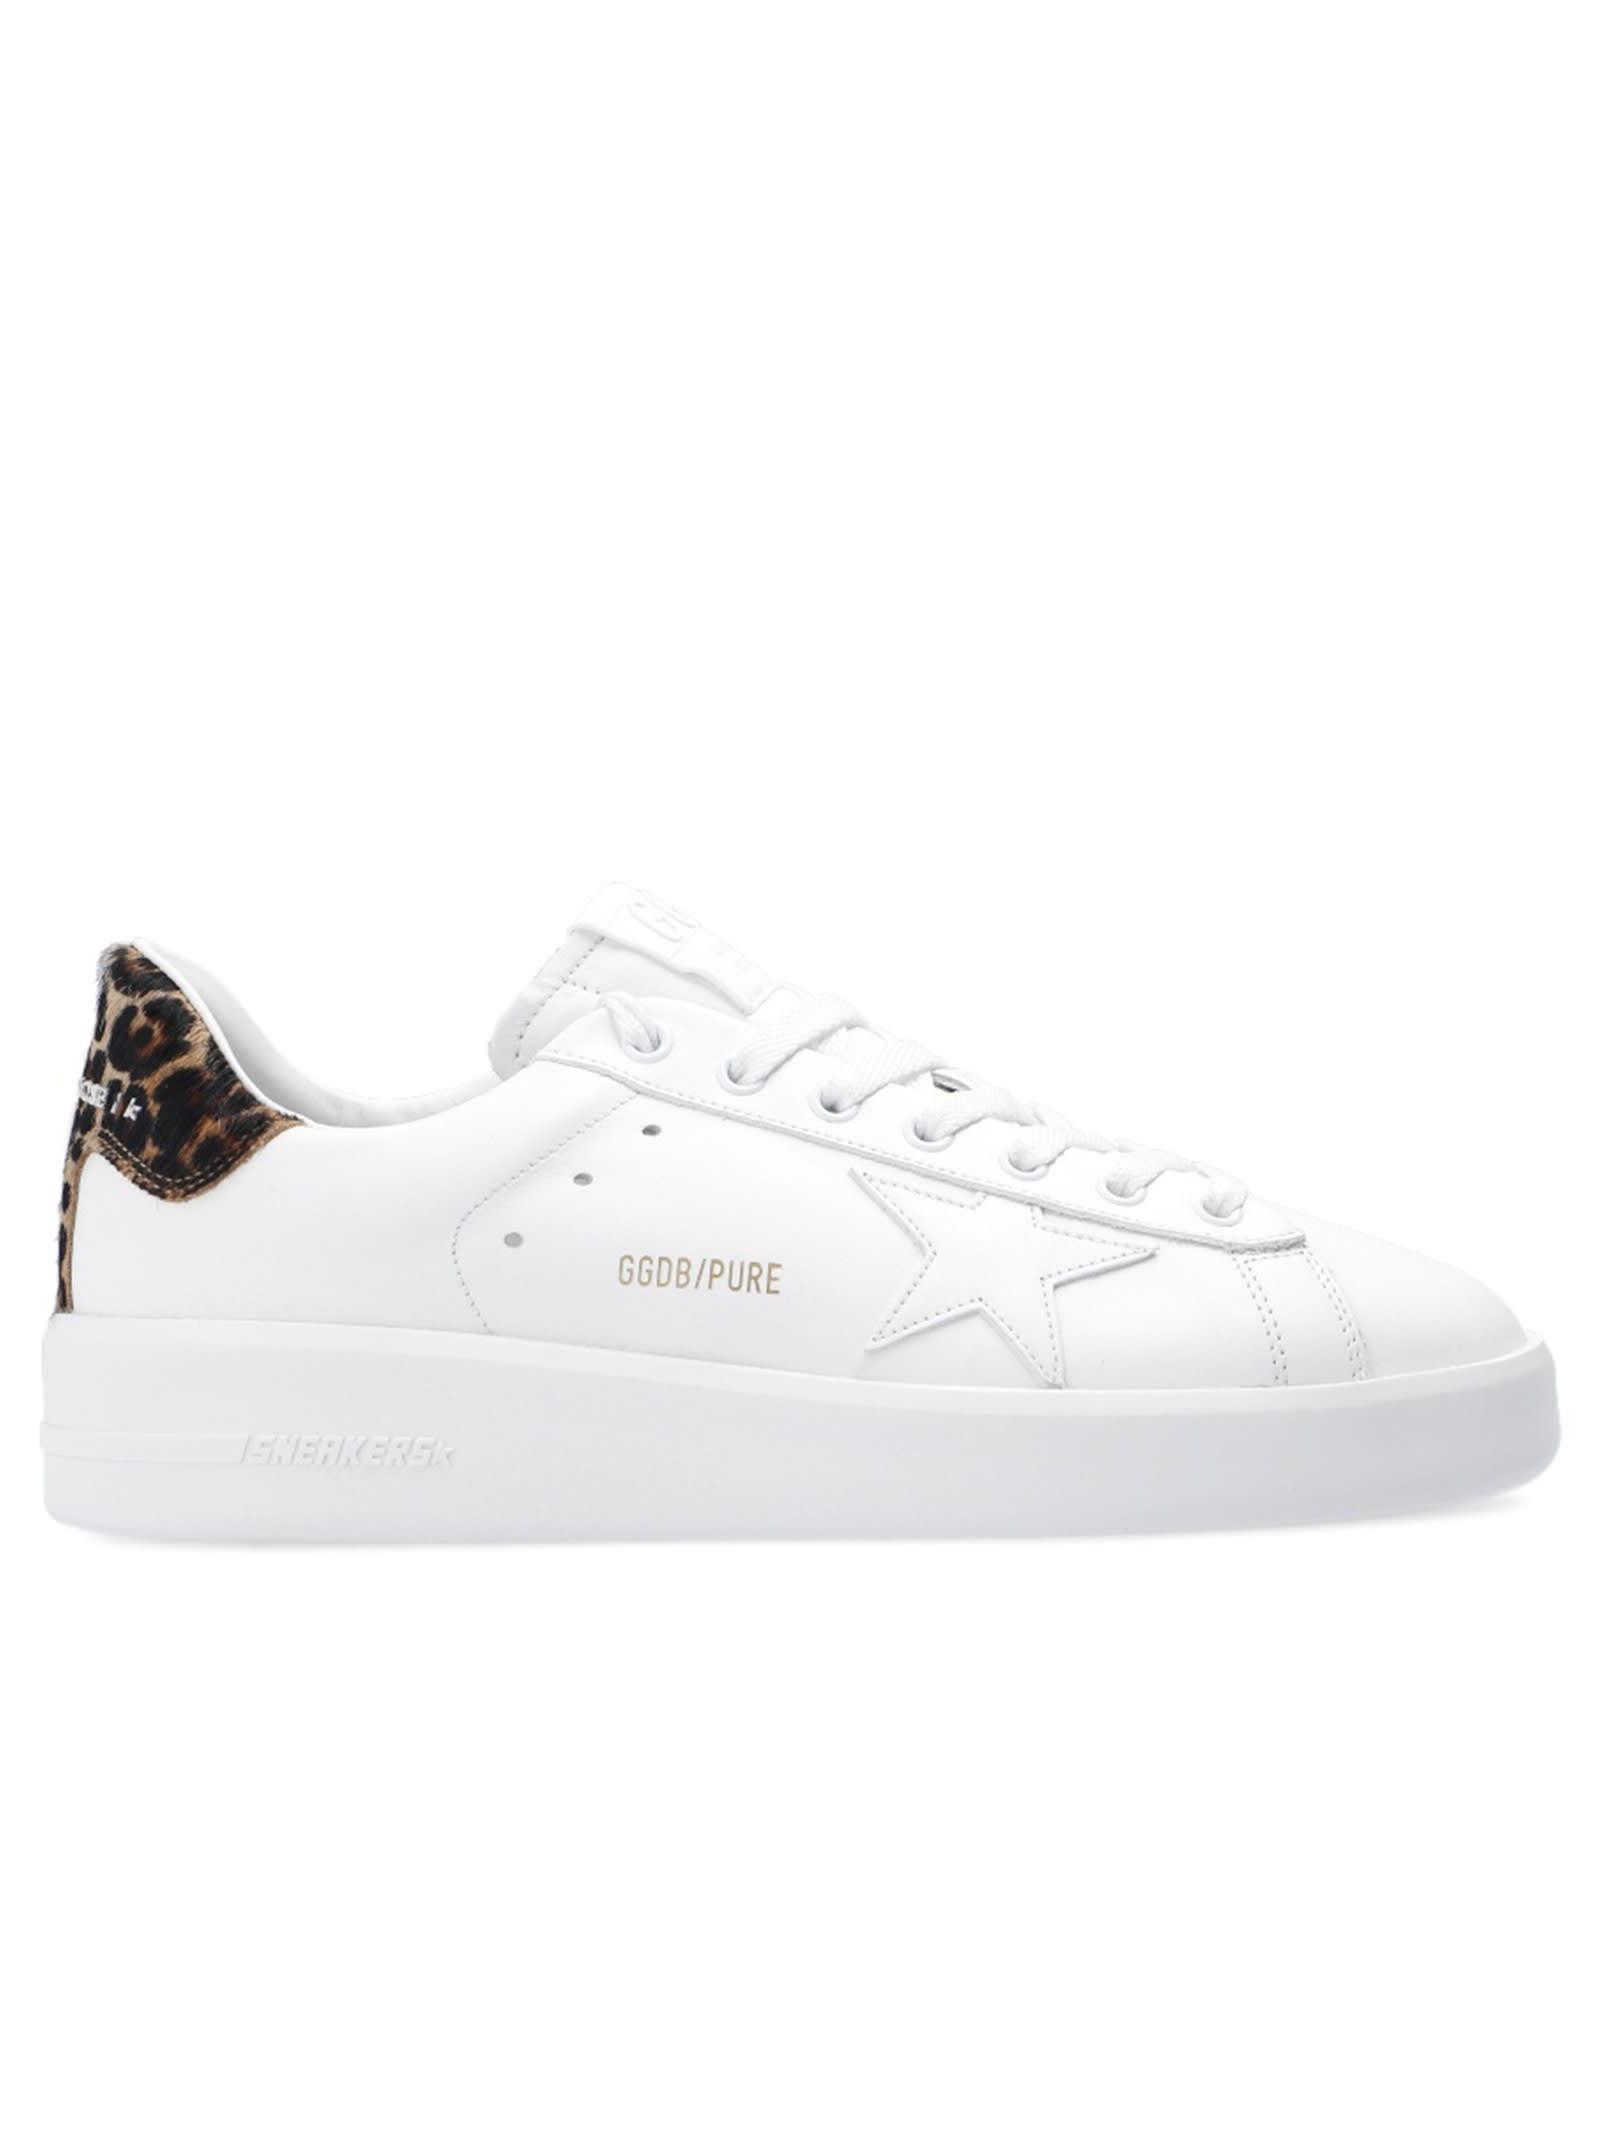 Golden Goose WHITE LEATHER PURE STAR SNEAKERS